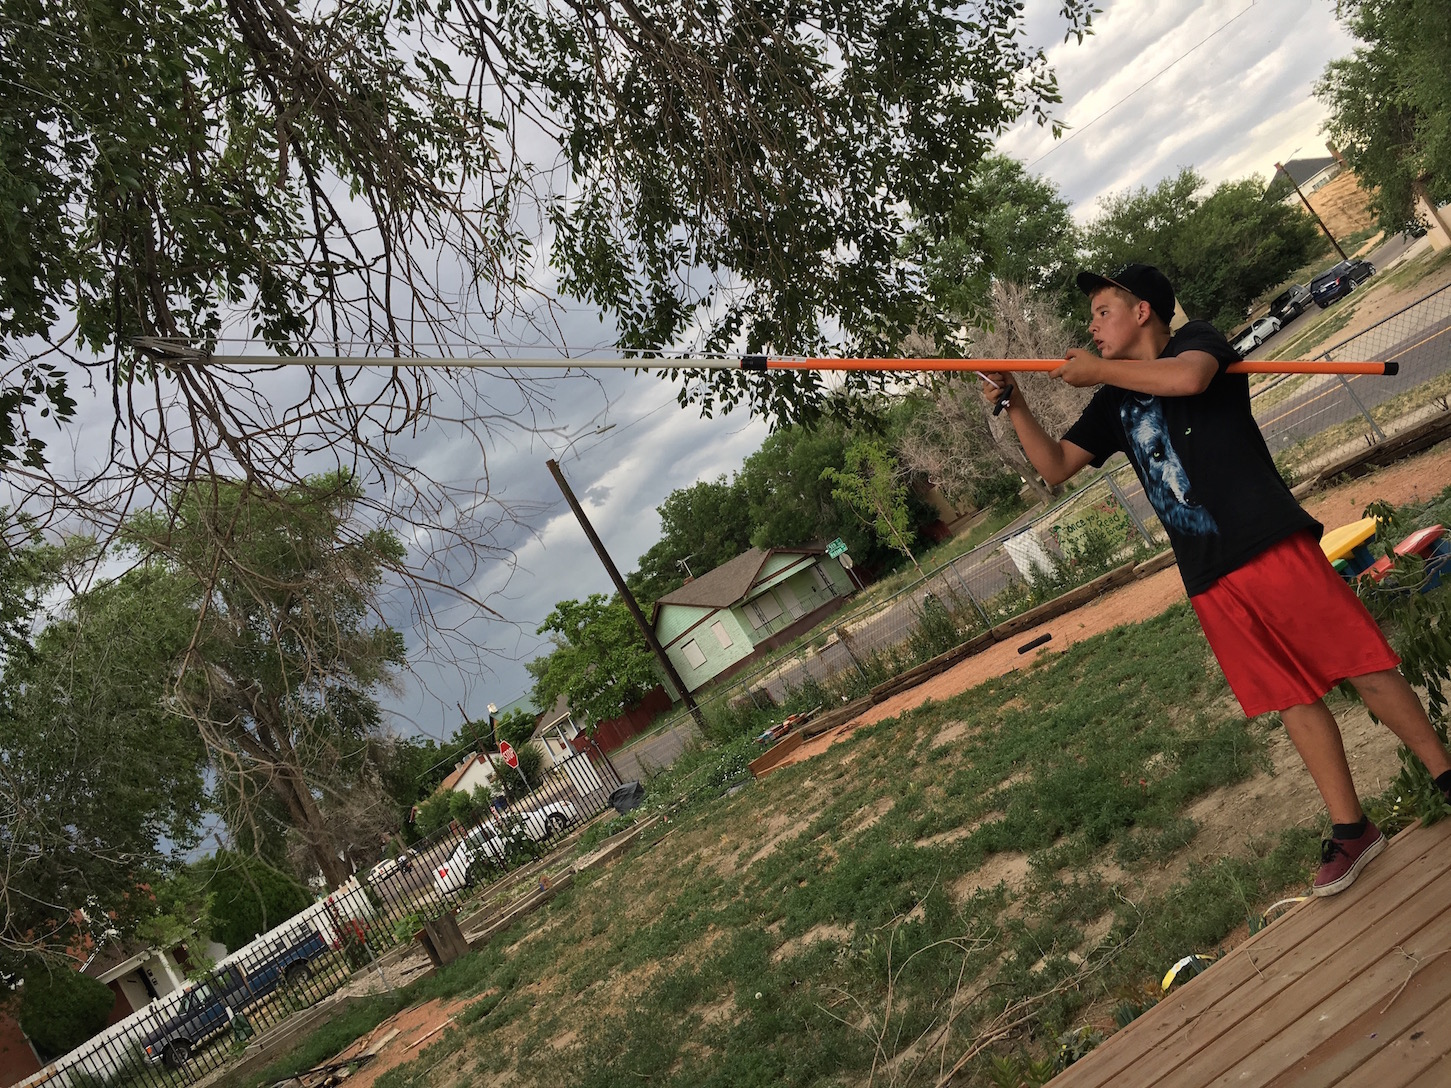 backyard activities music jam pueblo house cage trying out the new branch trimmer